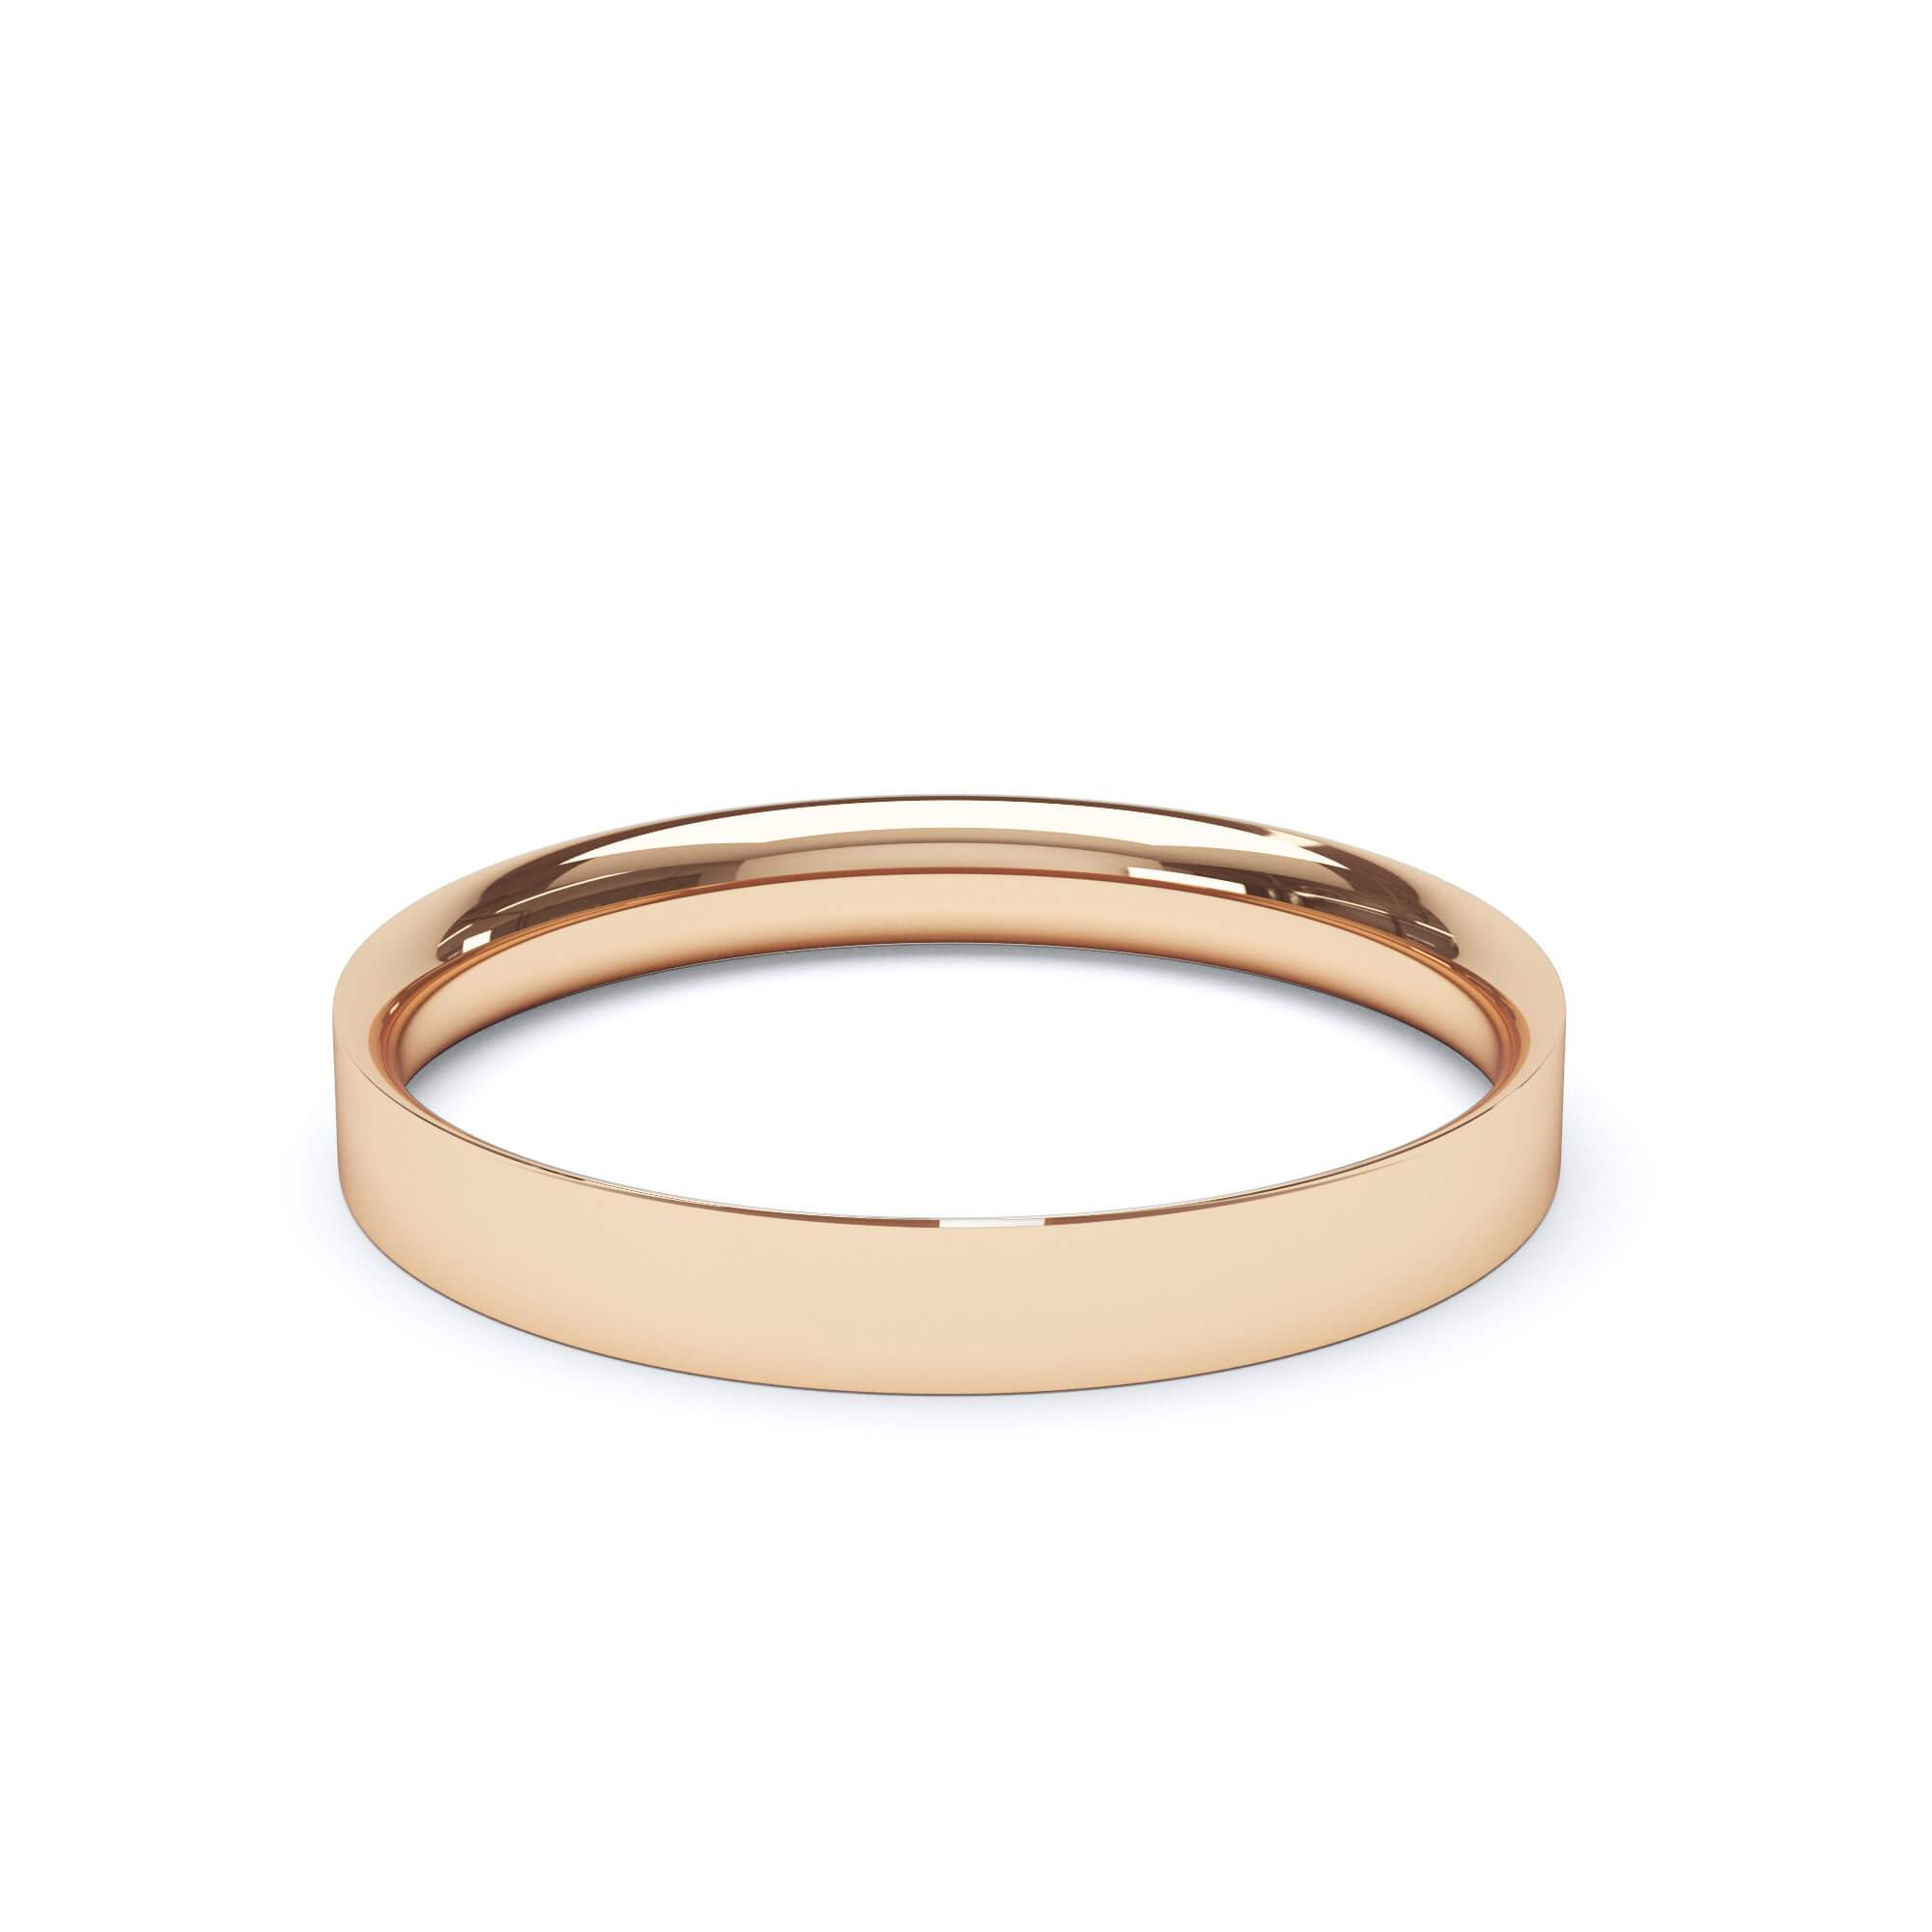 Lily Arkwright Wedding Bands 3.0mm / 18K Rose Gold Women's Plain Wedding Band Flat Court Profile 18k Rose Gold